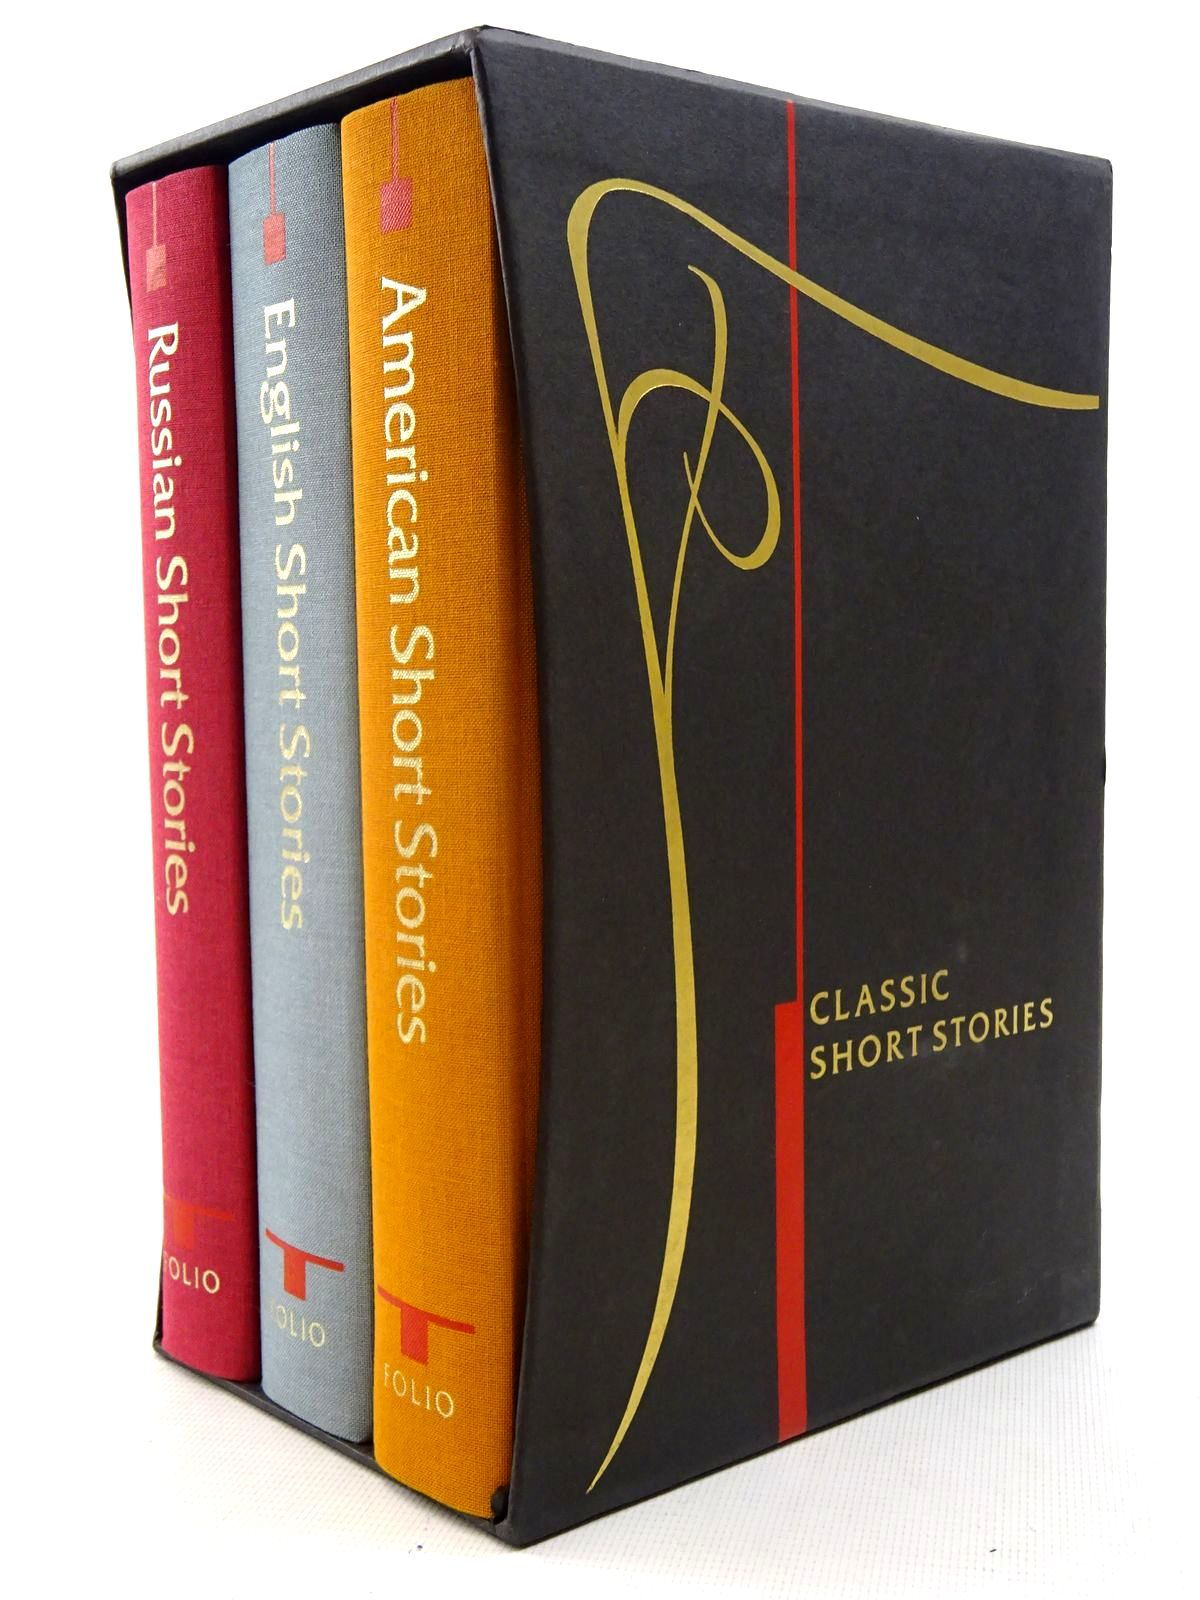 Photo of CLASSIC SHORT STORIES (3 VOLUMES) ENGLISH, RUSSIAN & AMERICAN written by Pushkin, Alexander<br />Irving, Washington<br />Gaskell, Mrs.<br />et al,  illustrated by Waters, Rod<br />Gulla, Paul<br />Pisarev, Roman published by Folio Society (STOCK CODE: 2126050)  for sale by Stella & Rose's Books